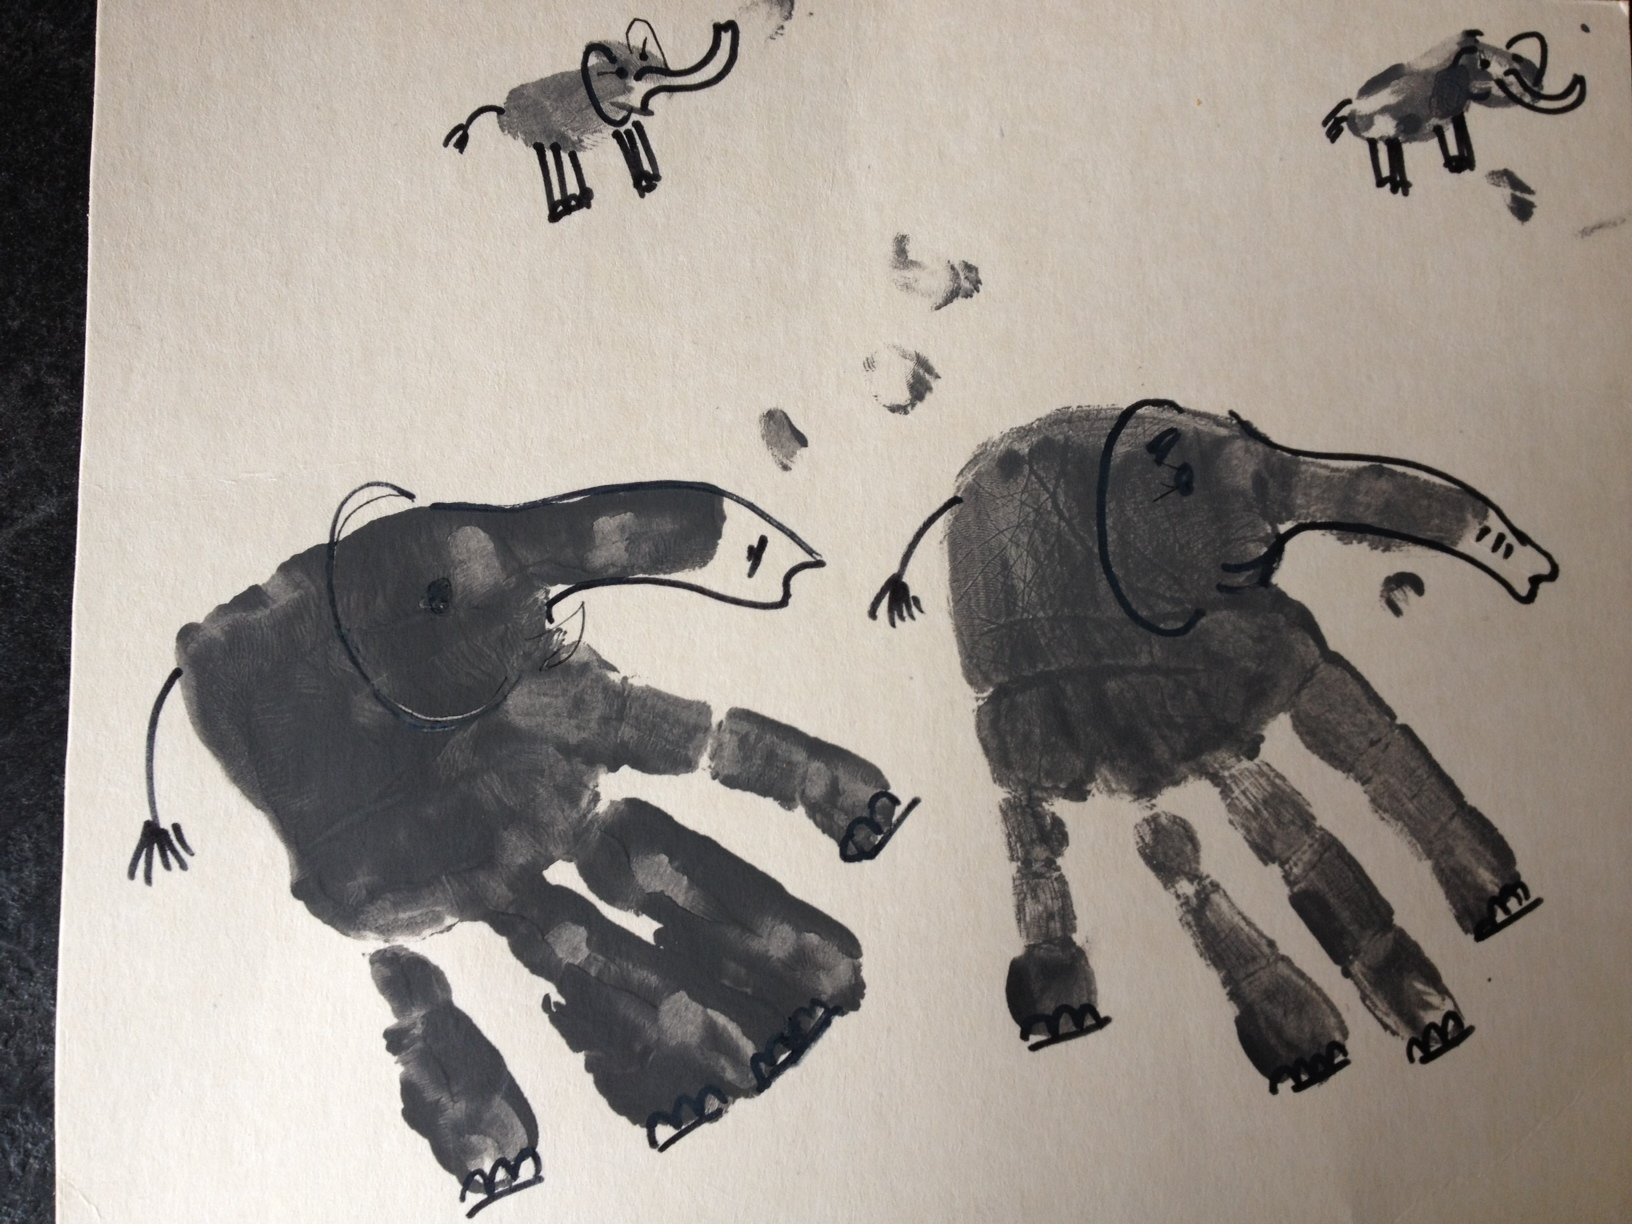 Herd of hand print Elephants